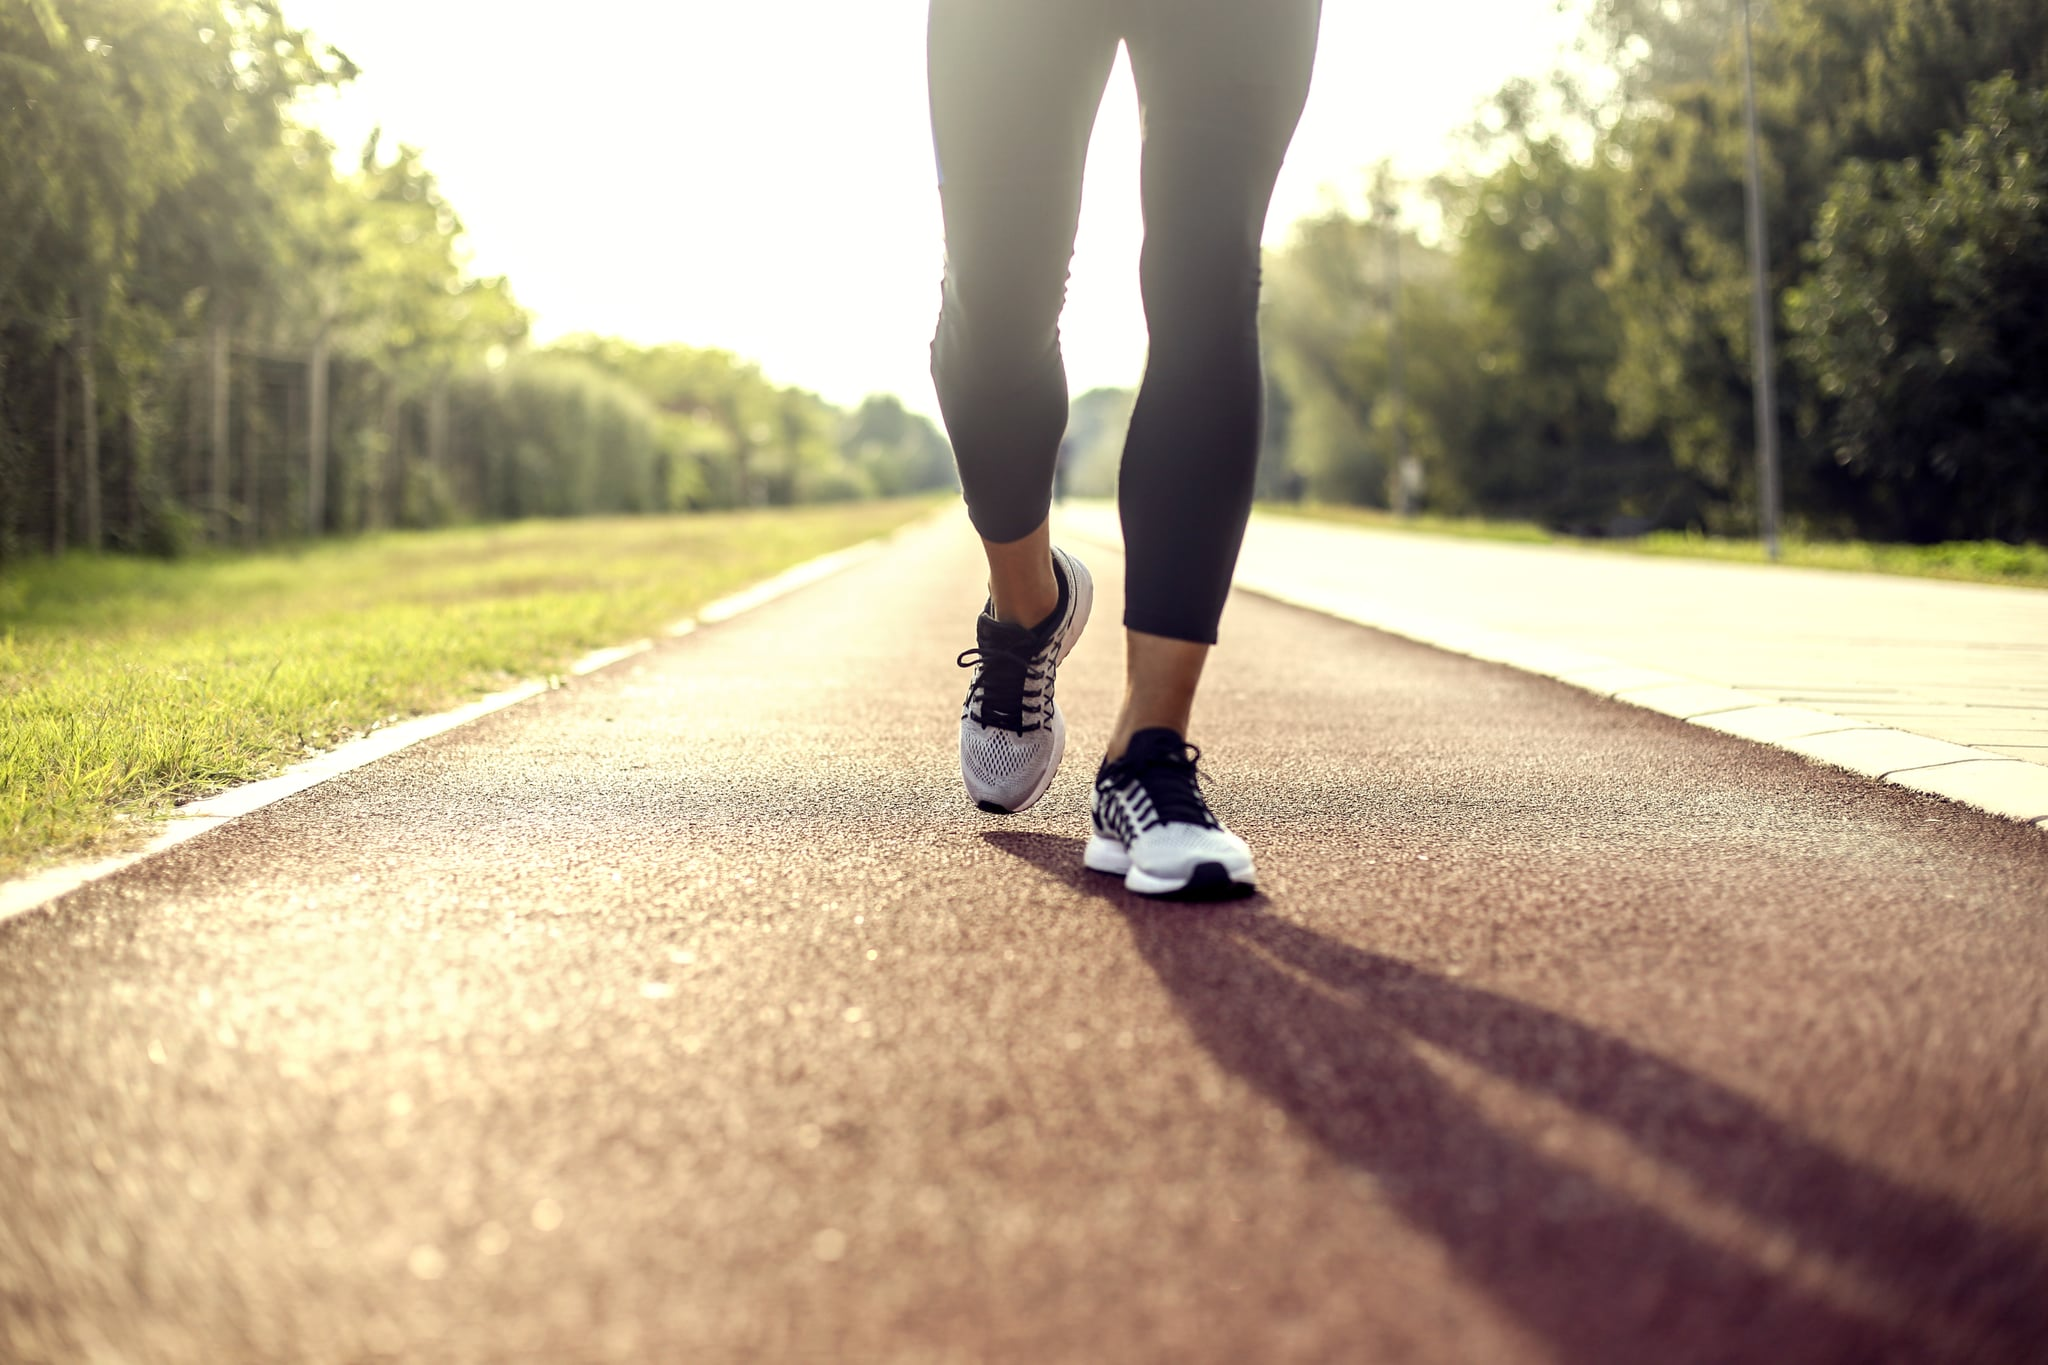 We Asked a Trainer How Often You'd Need to Walk to Lose Weight, and Her Answer Is Surprising